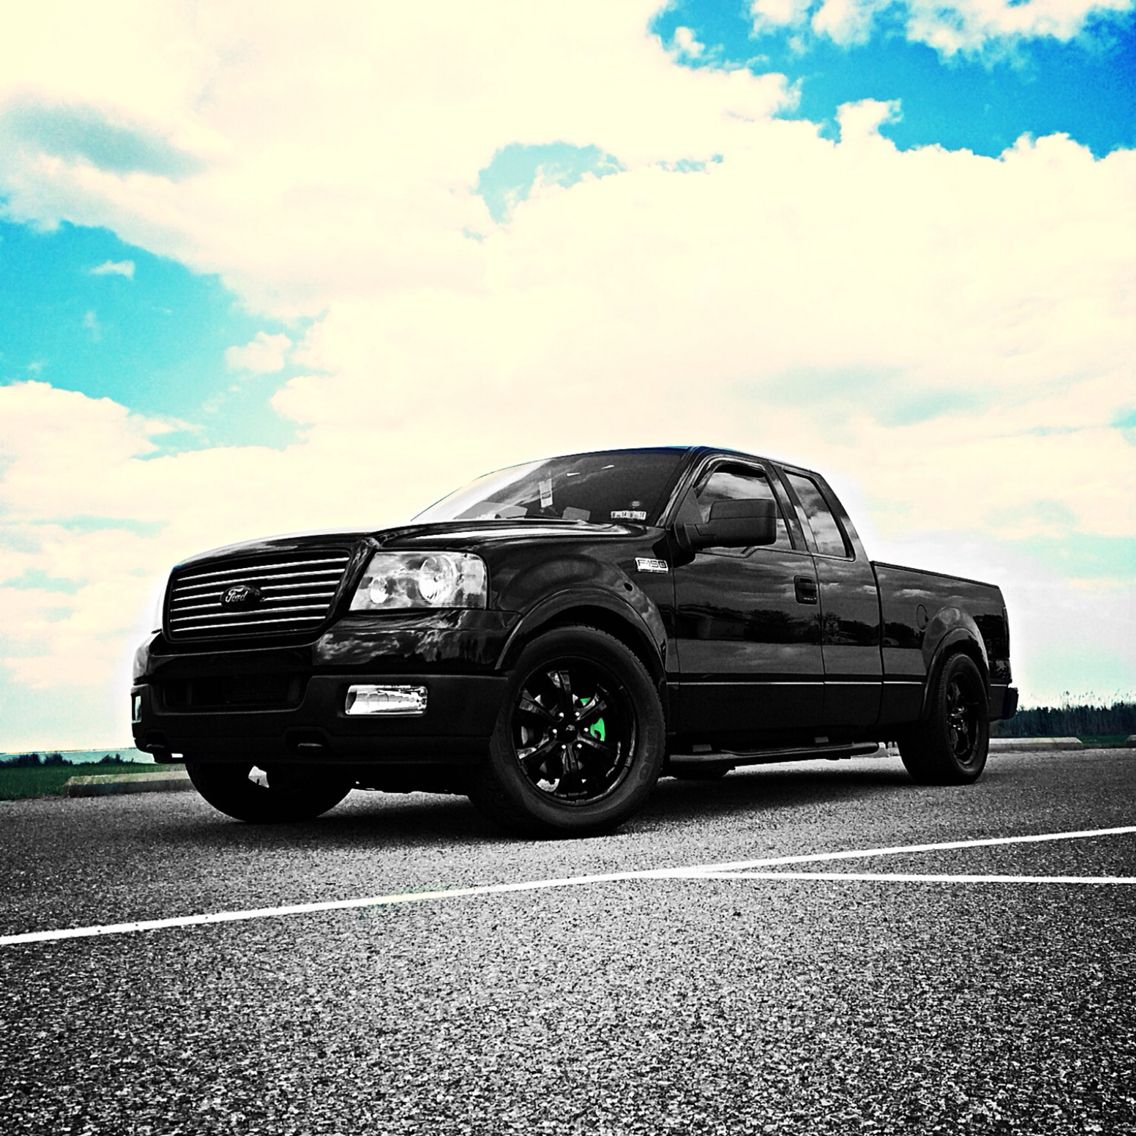 Custom 2004 Ford F 150 Slammed And All Blacked Out This Truck Is My Baby